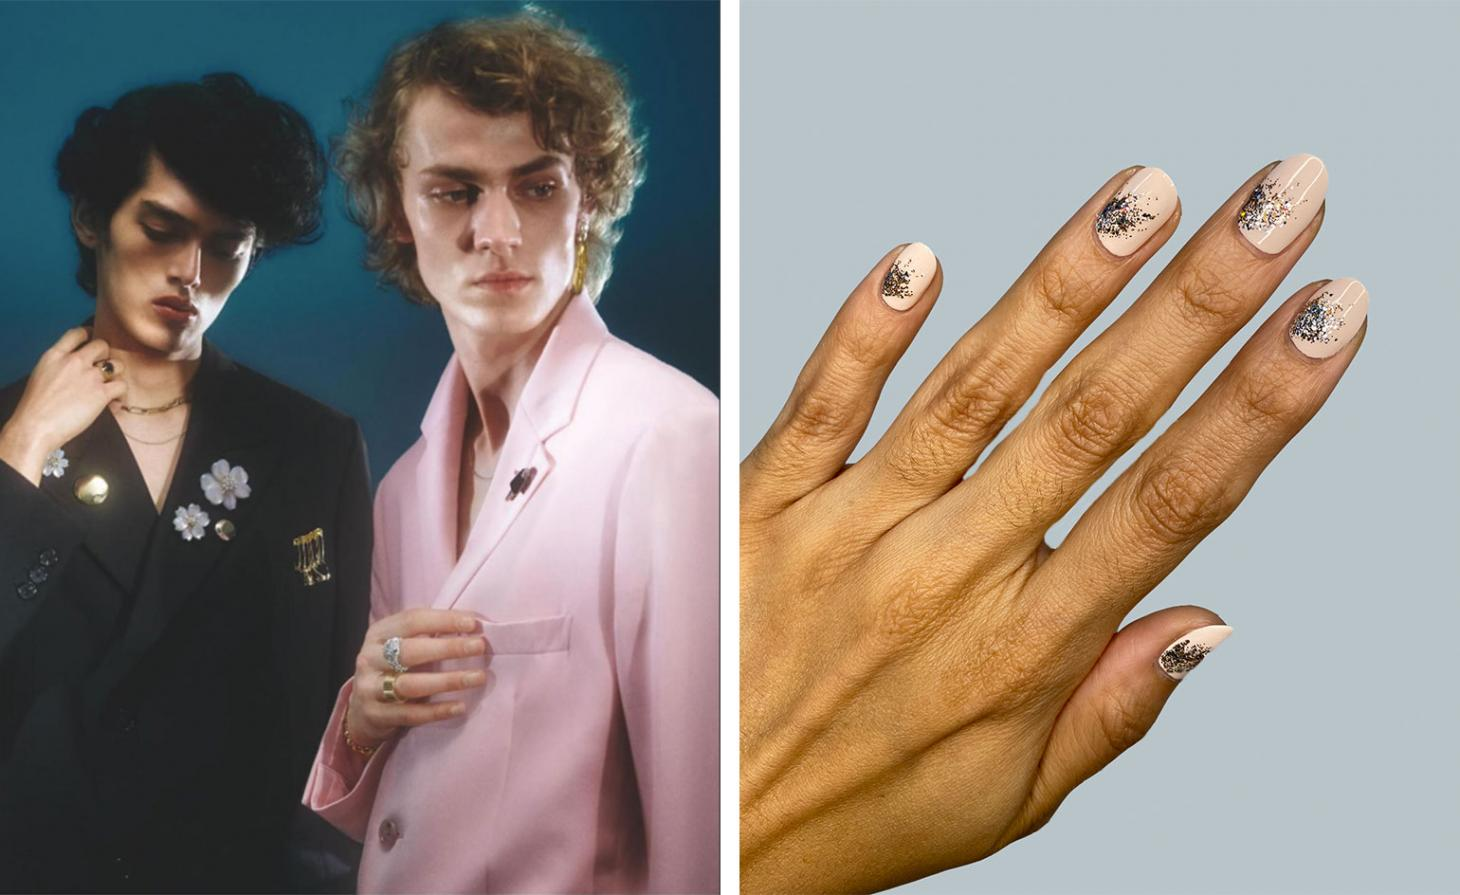 boys in suits next to pink and sparkly nails